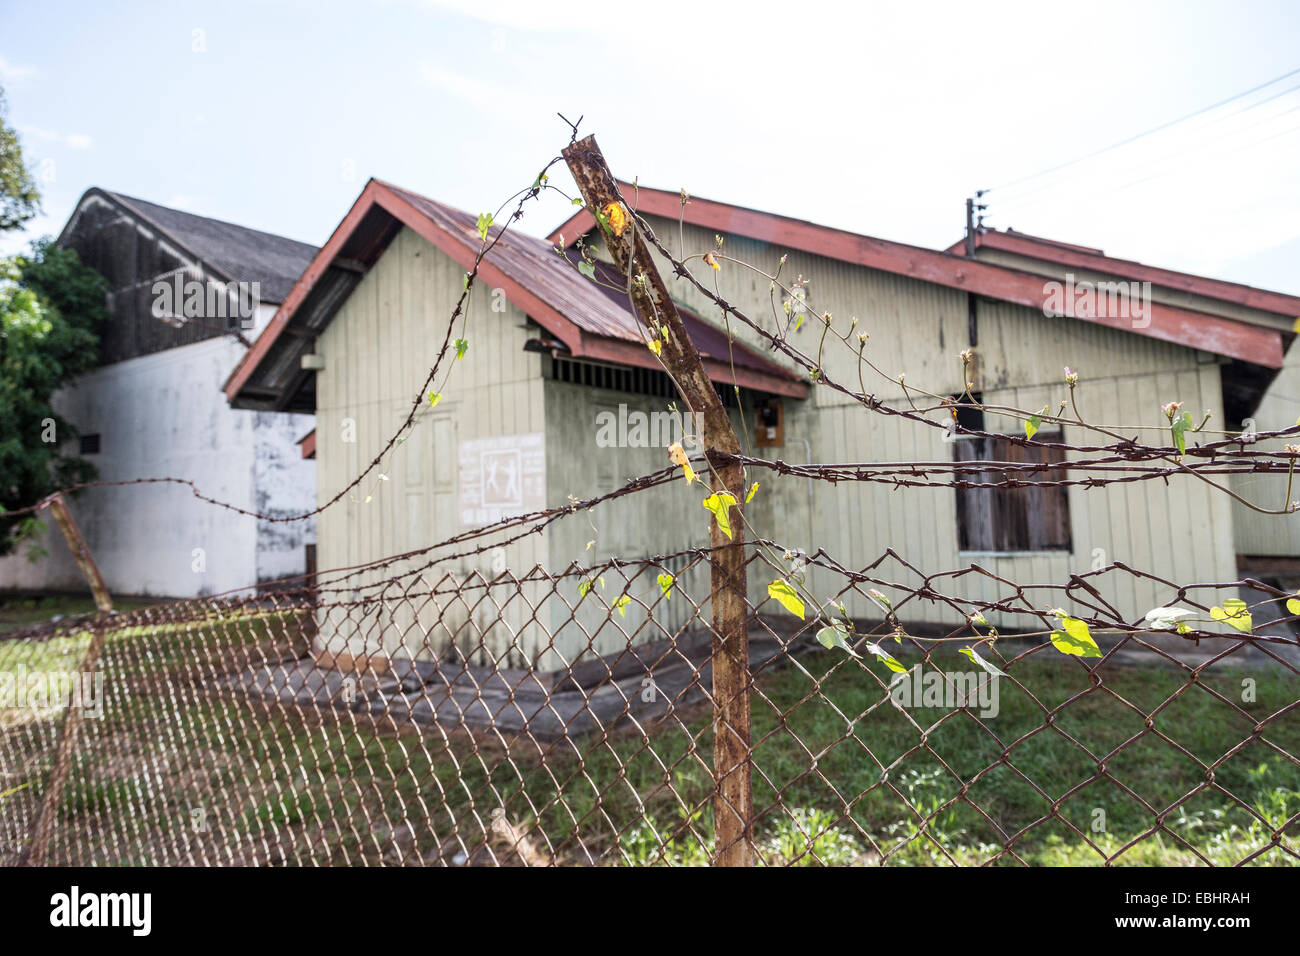 Old barbed wire fence around building, Miri, Malaysia - Stock Image